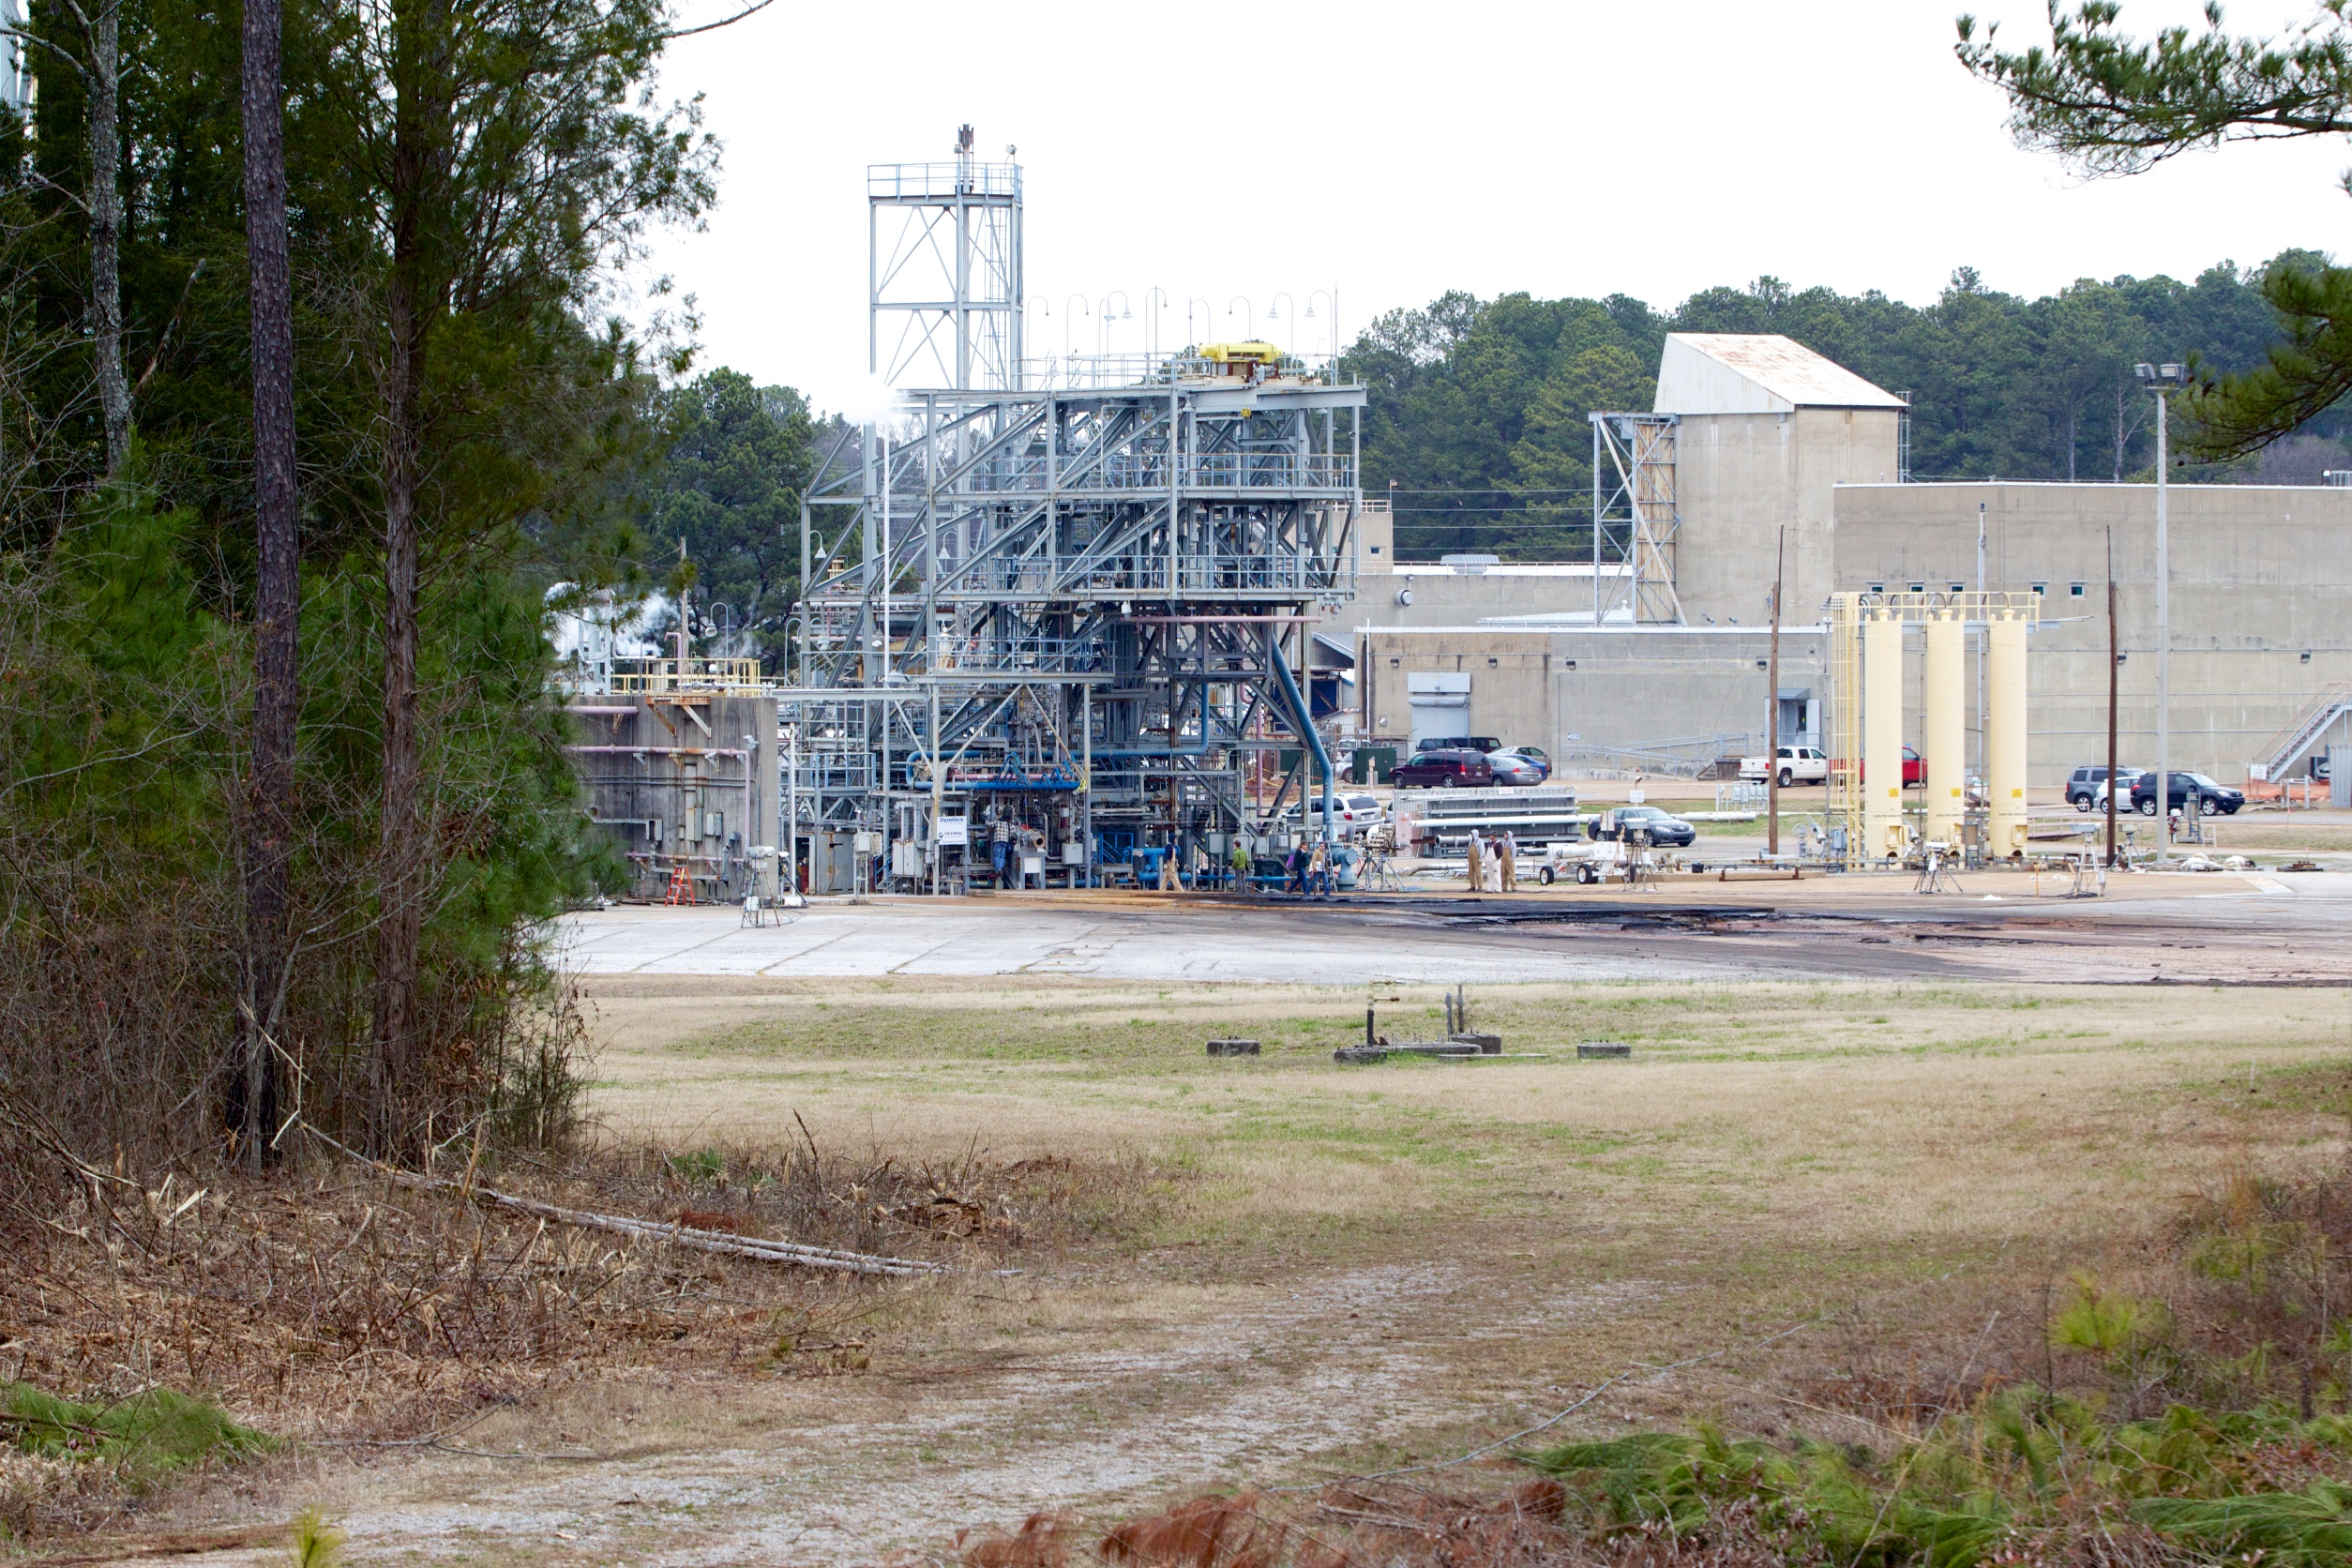 The view from the bleachers, looking at the gas generator test stand.